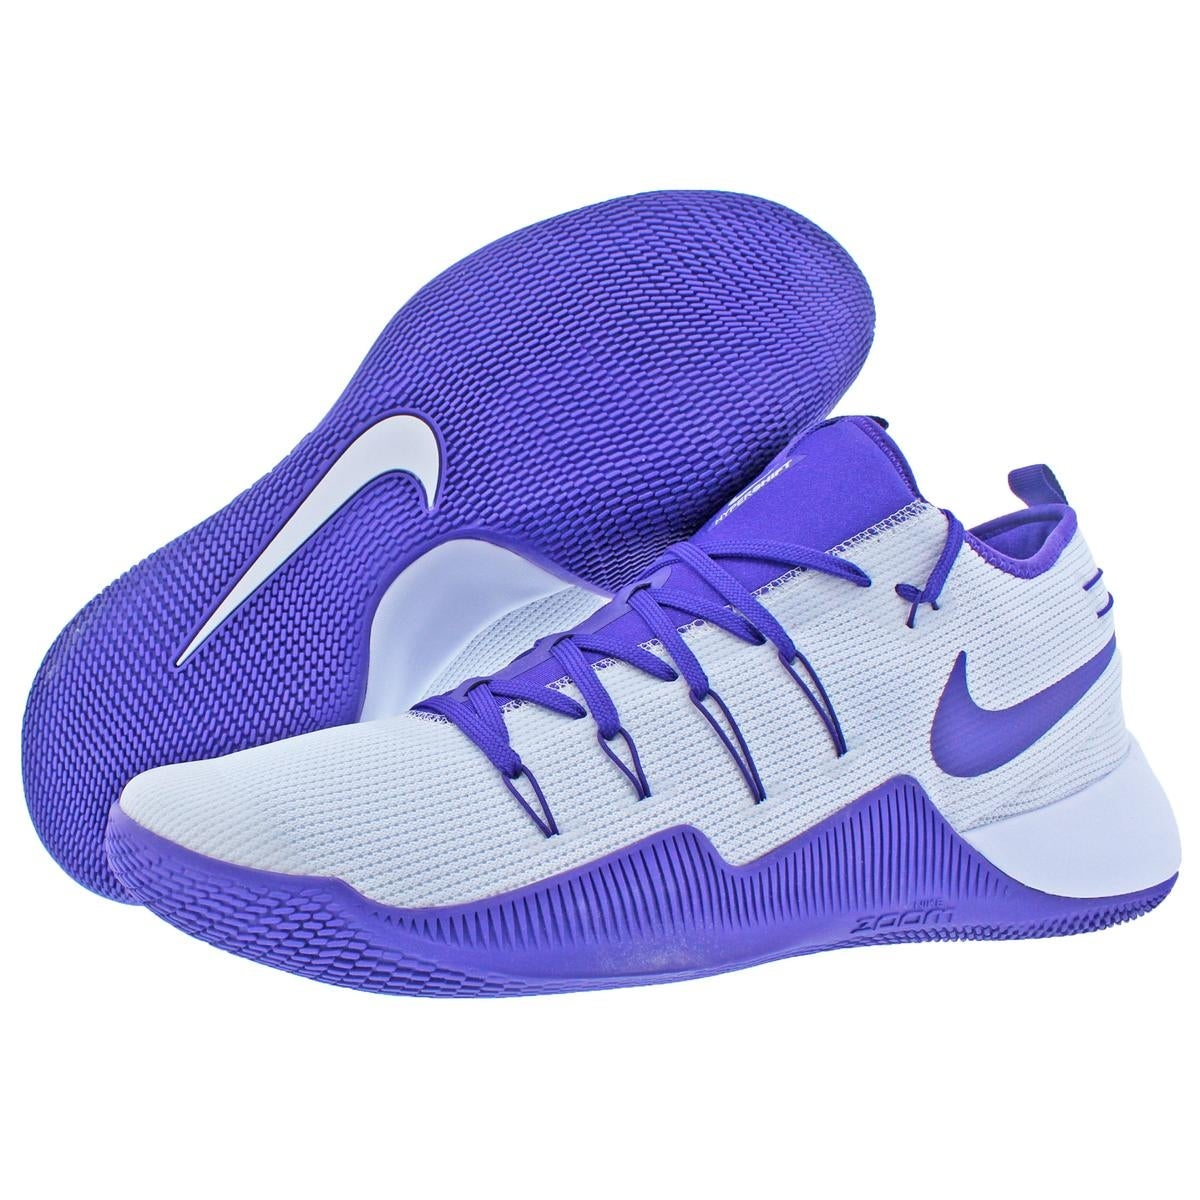 on sale 3befb e7d94 Shop Nike Mens Hypershift TB PROMO Basketball Shoes Mid Top Nike Zoom -  Ships To Canada - Overstock - 21942603